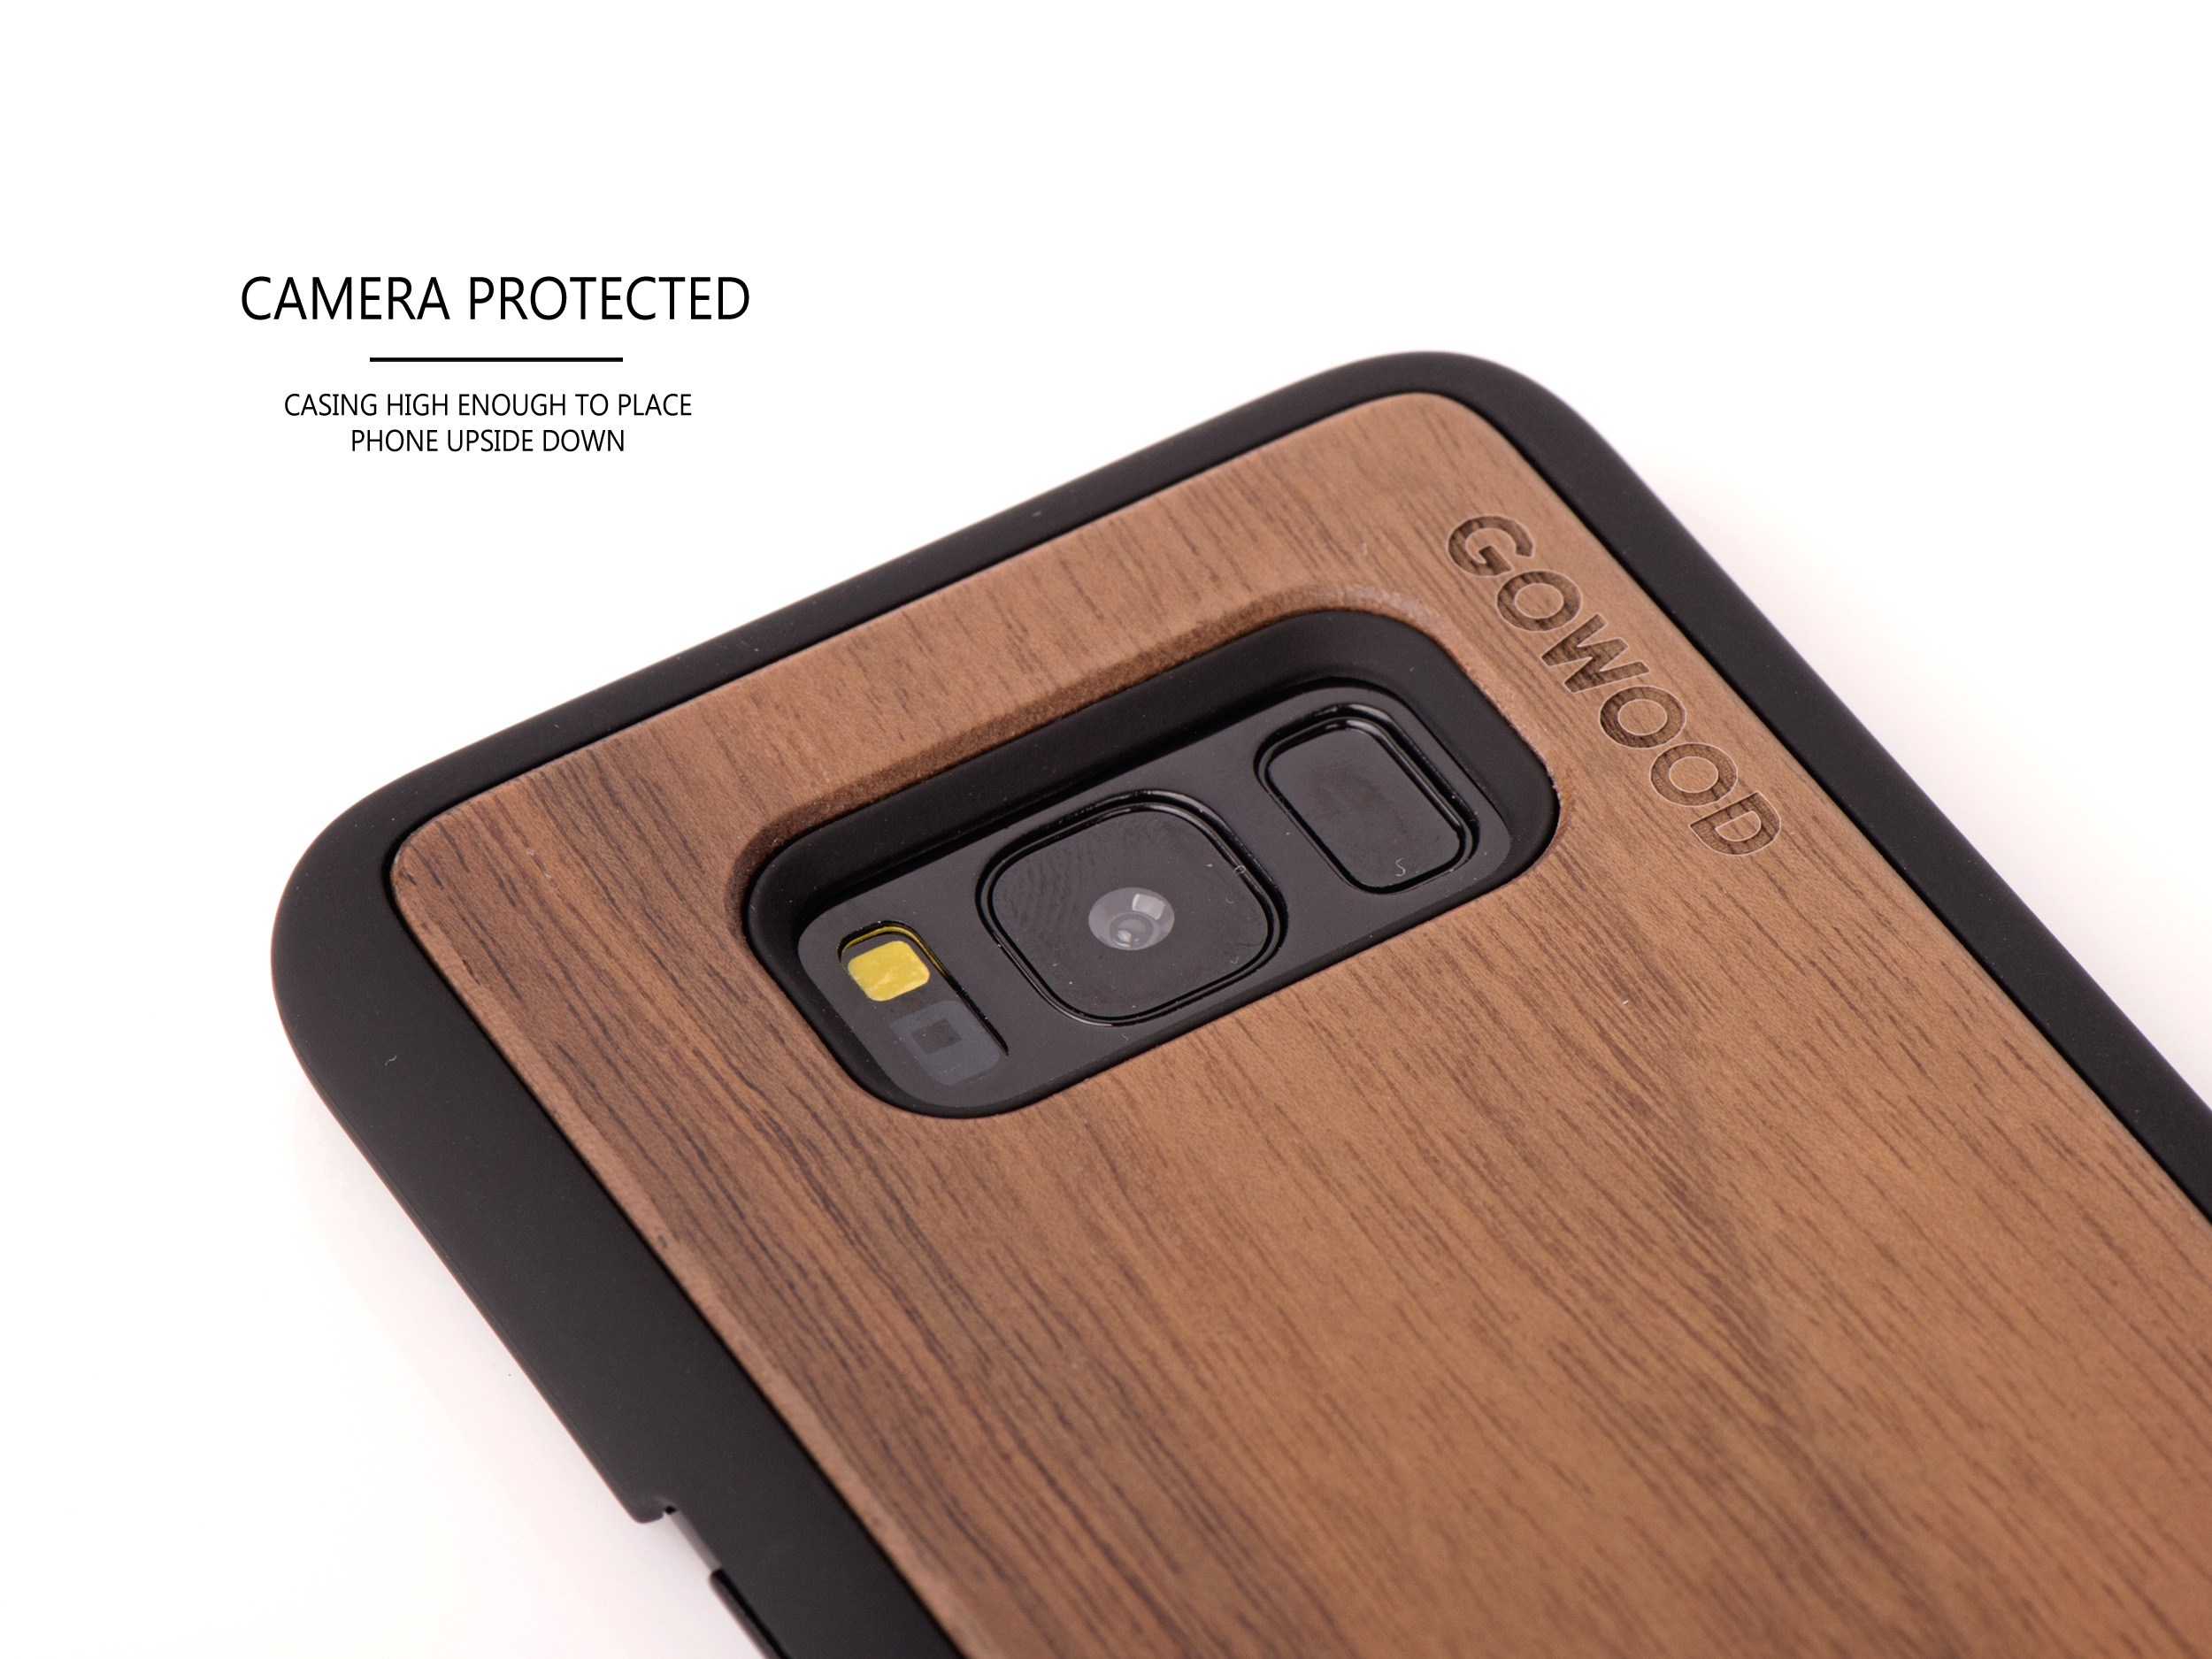 Samsung Galaxy S8 wood case walnut - camera